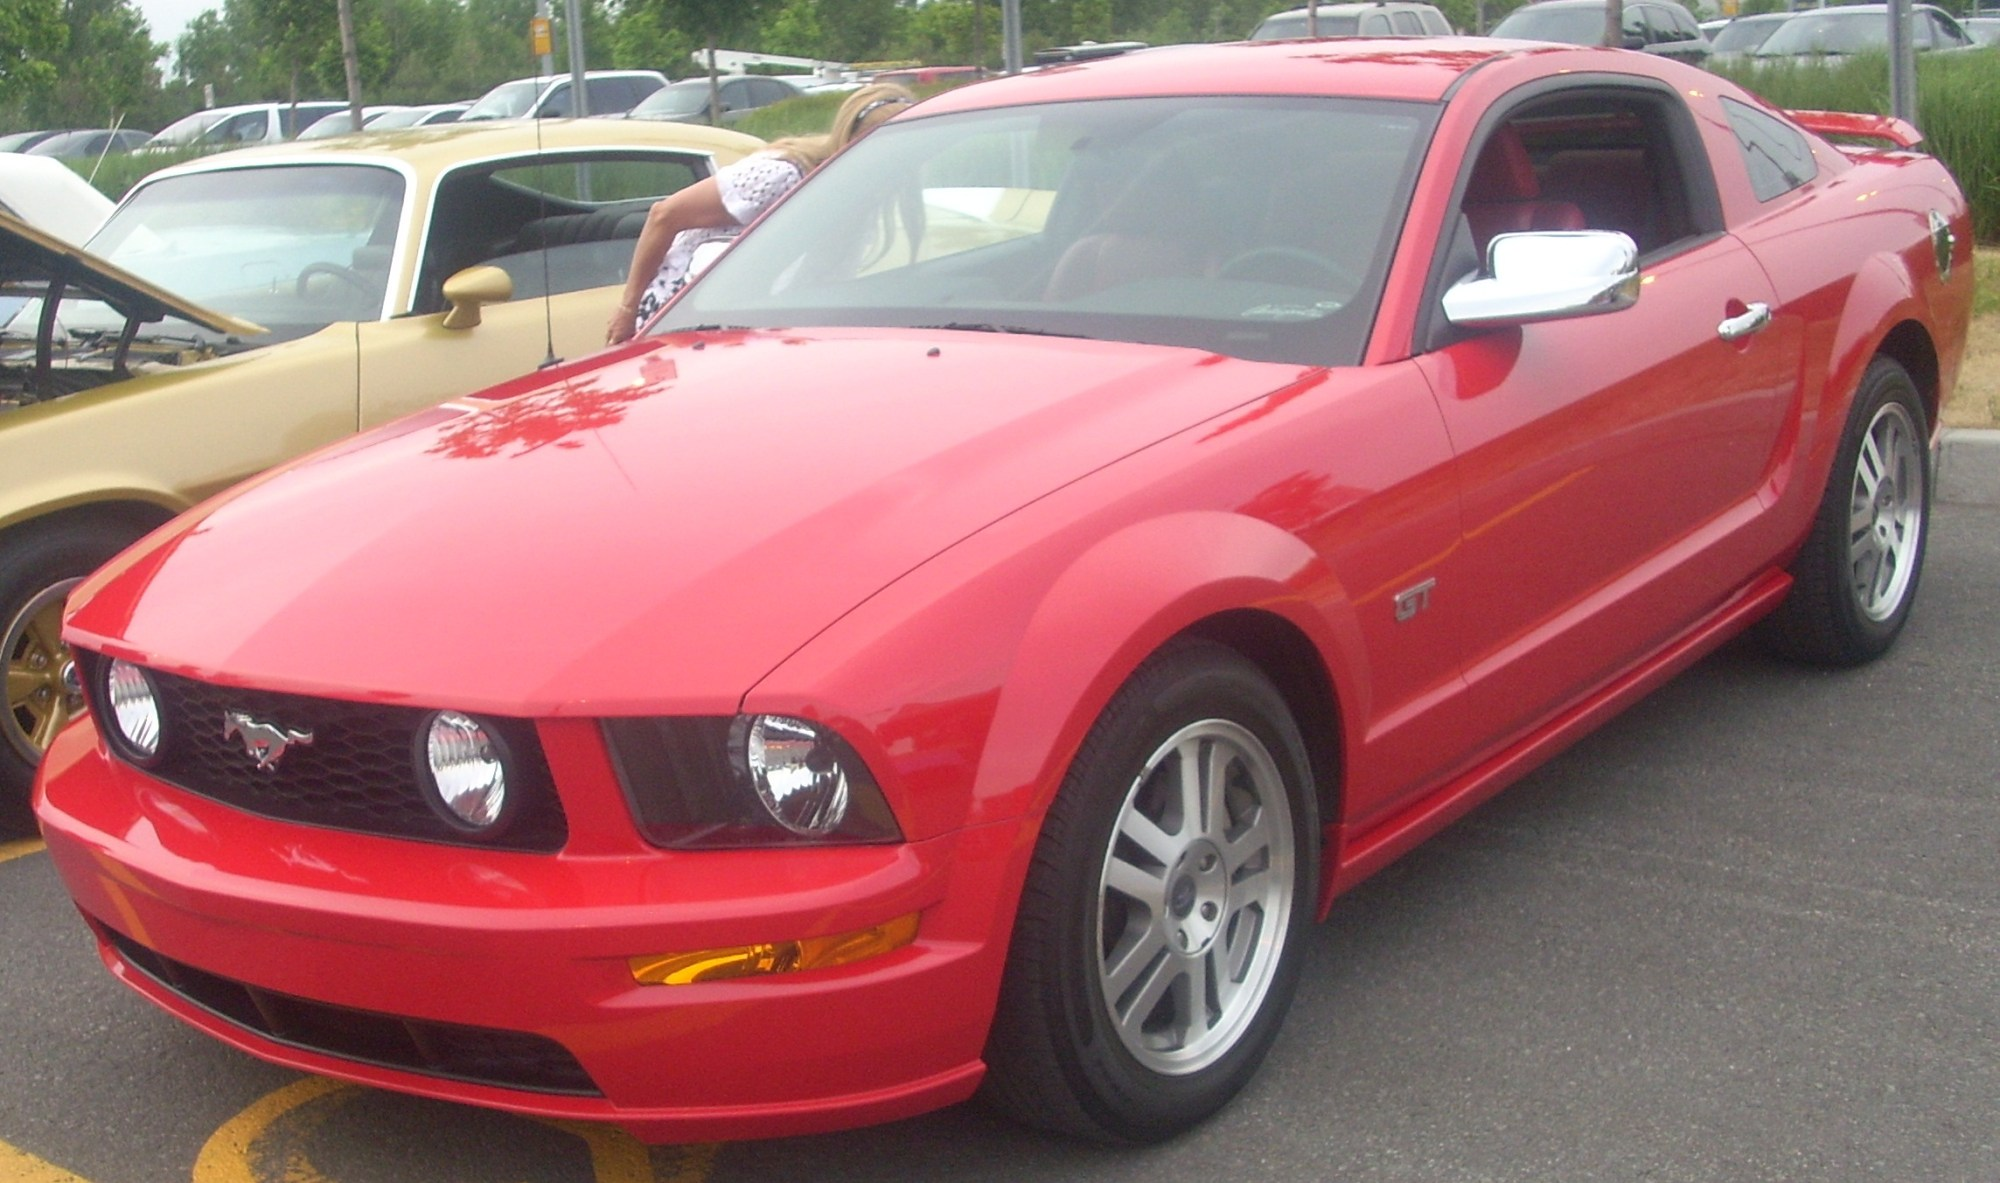 hight resolution of file 05 09 ford mustang gt liftback centropolis laval 10